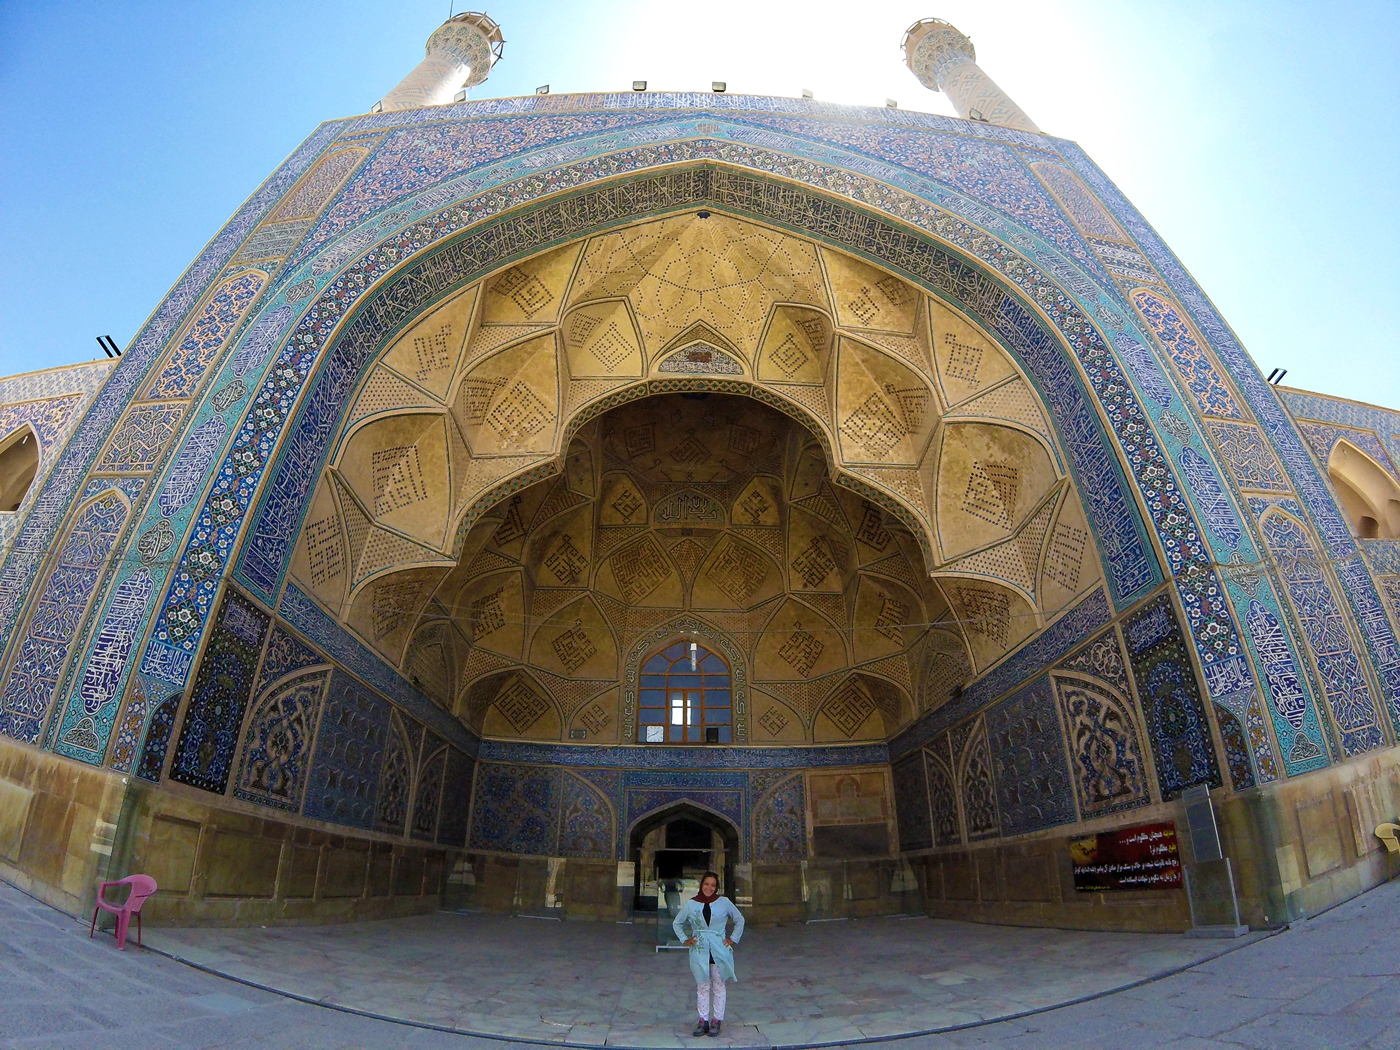 Bike trip, cross Iran by bike, Jameh Mosque or Great Mosque of Isfahan. Cycling travel, biketouring, cycling Iran, Jameh Mosque of Isfahan.